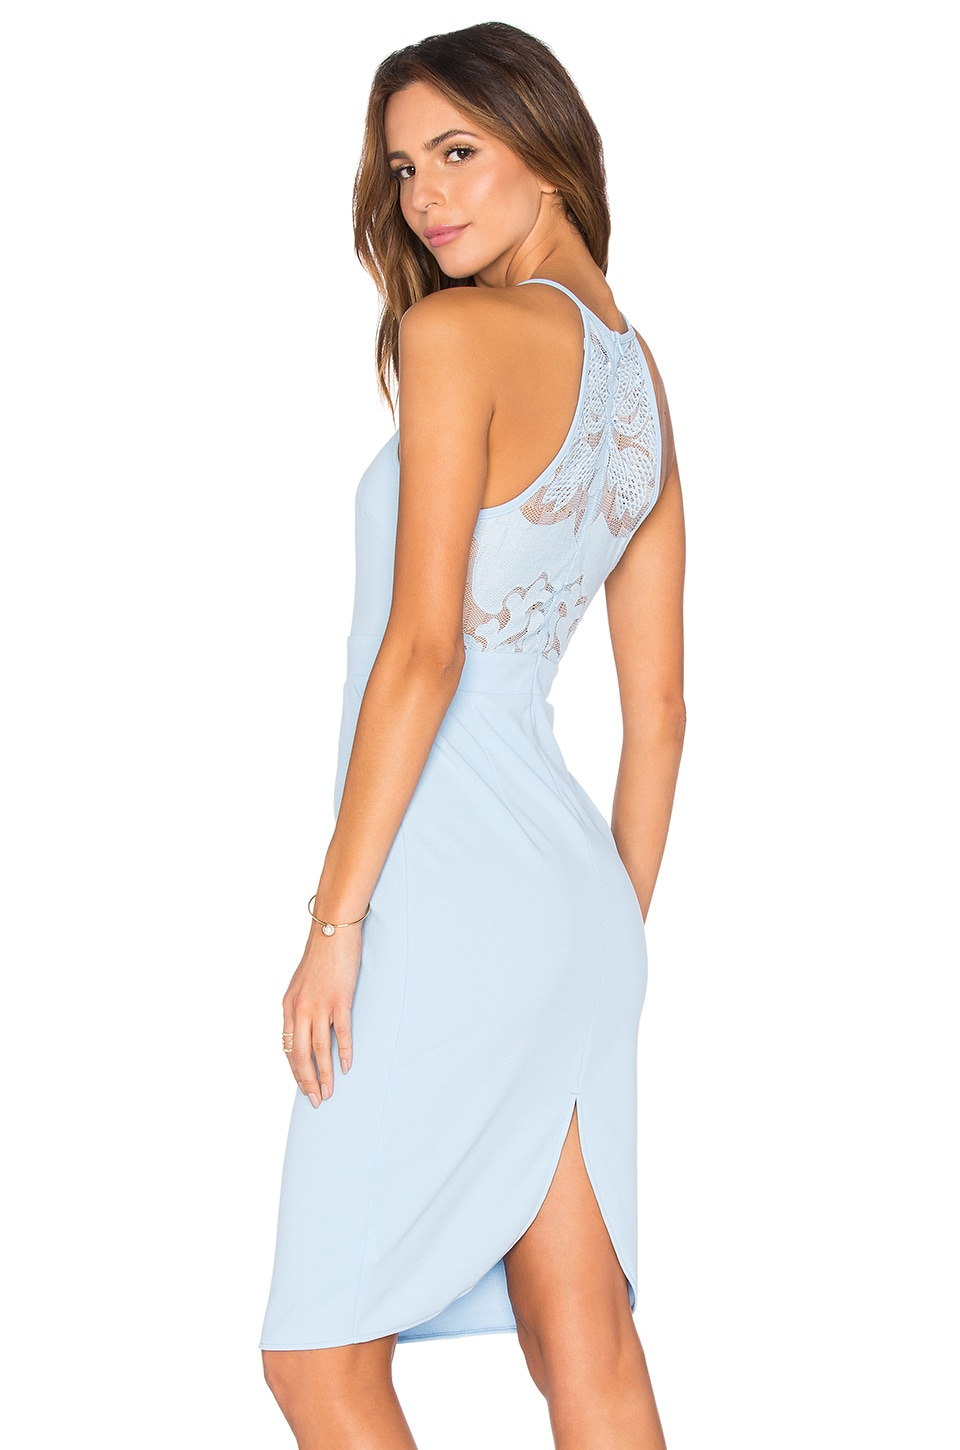 Toby Heart Ginger Sophia Lace Midi Dress in Cornflower Blue